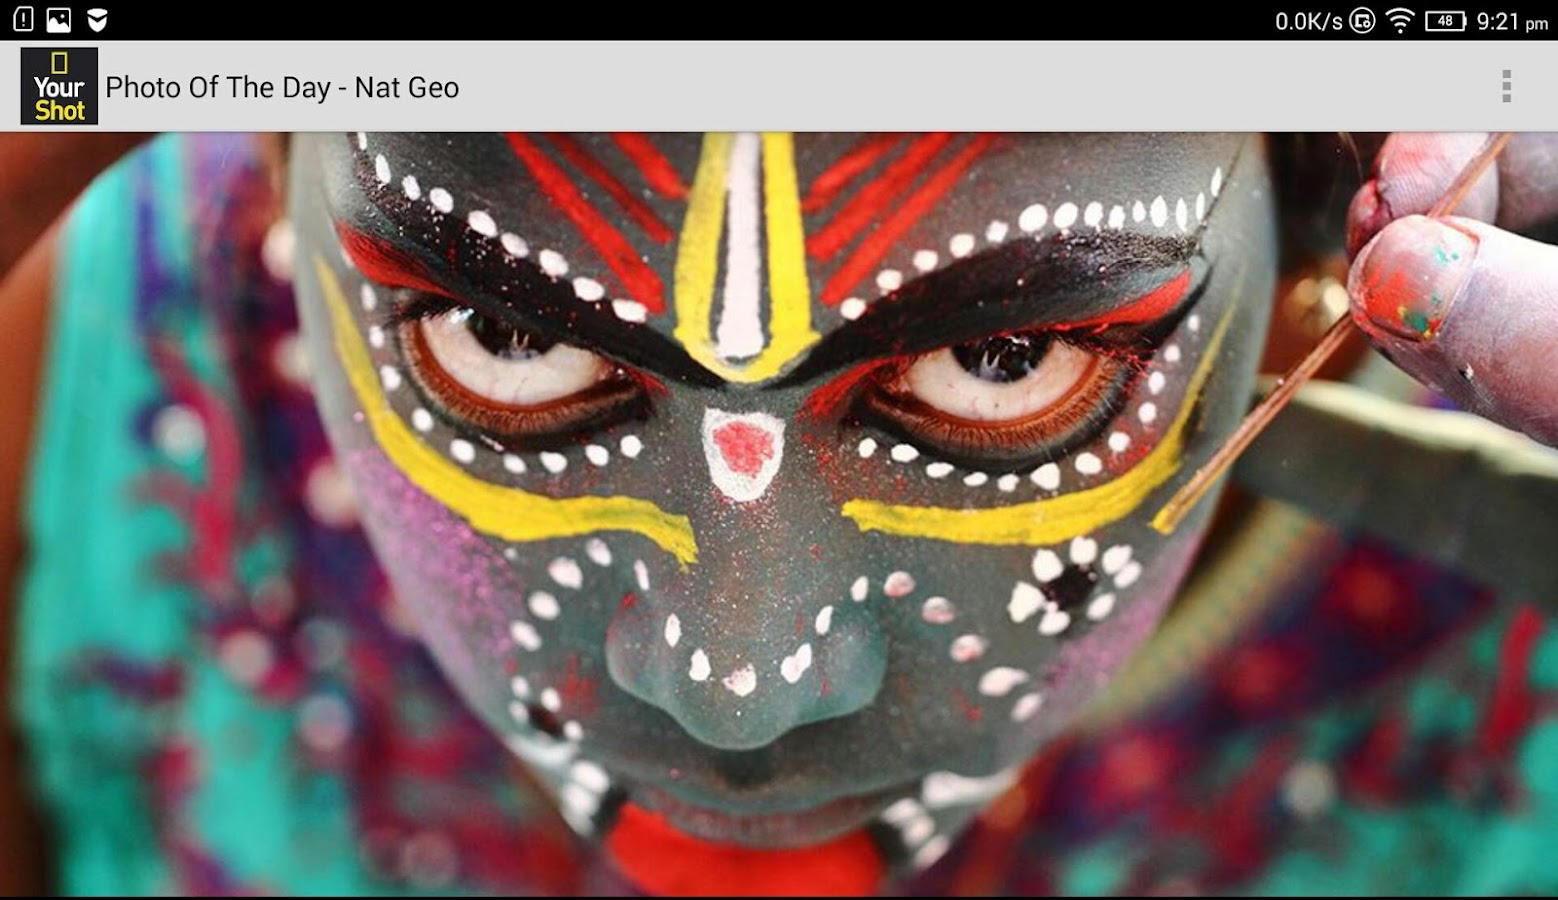 Photo Of The Day Nat Geo Android Apps On Google Play - 30 fascinating photos from national geographics archives